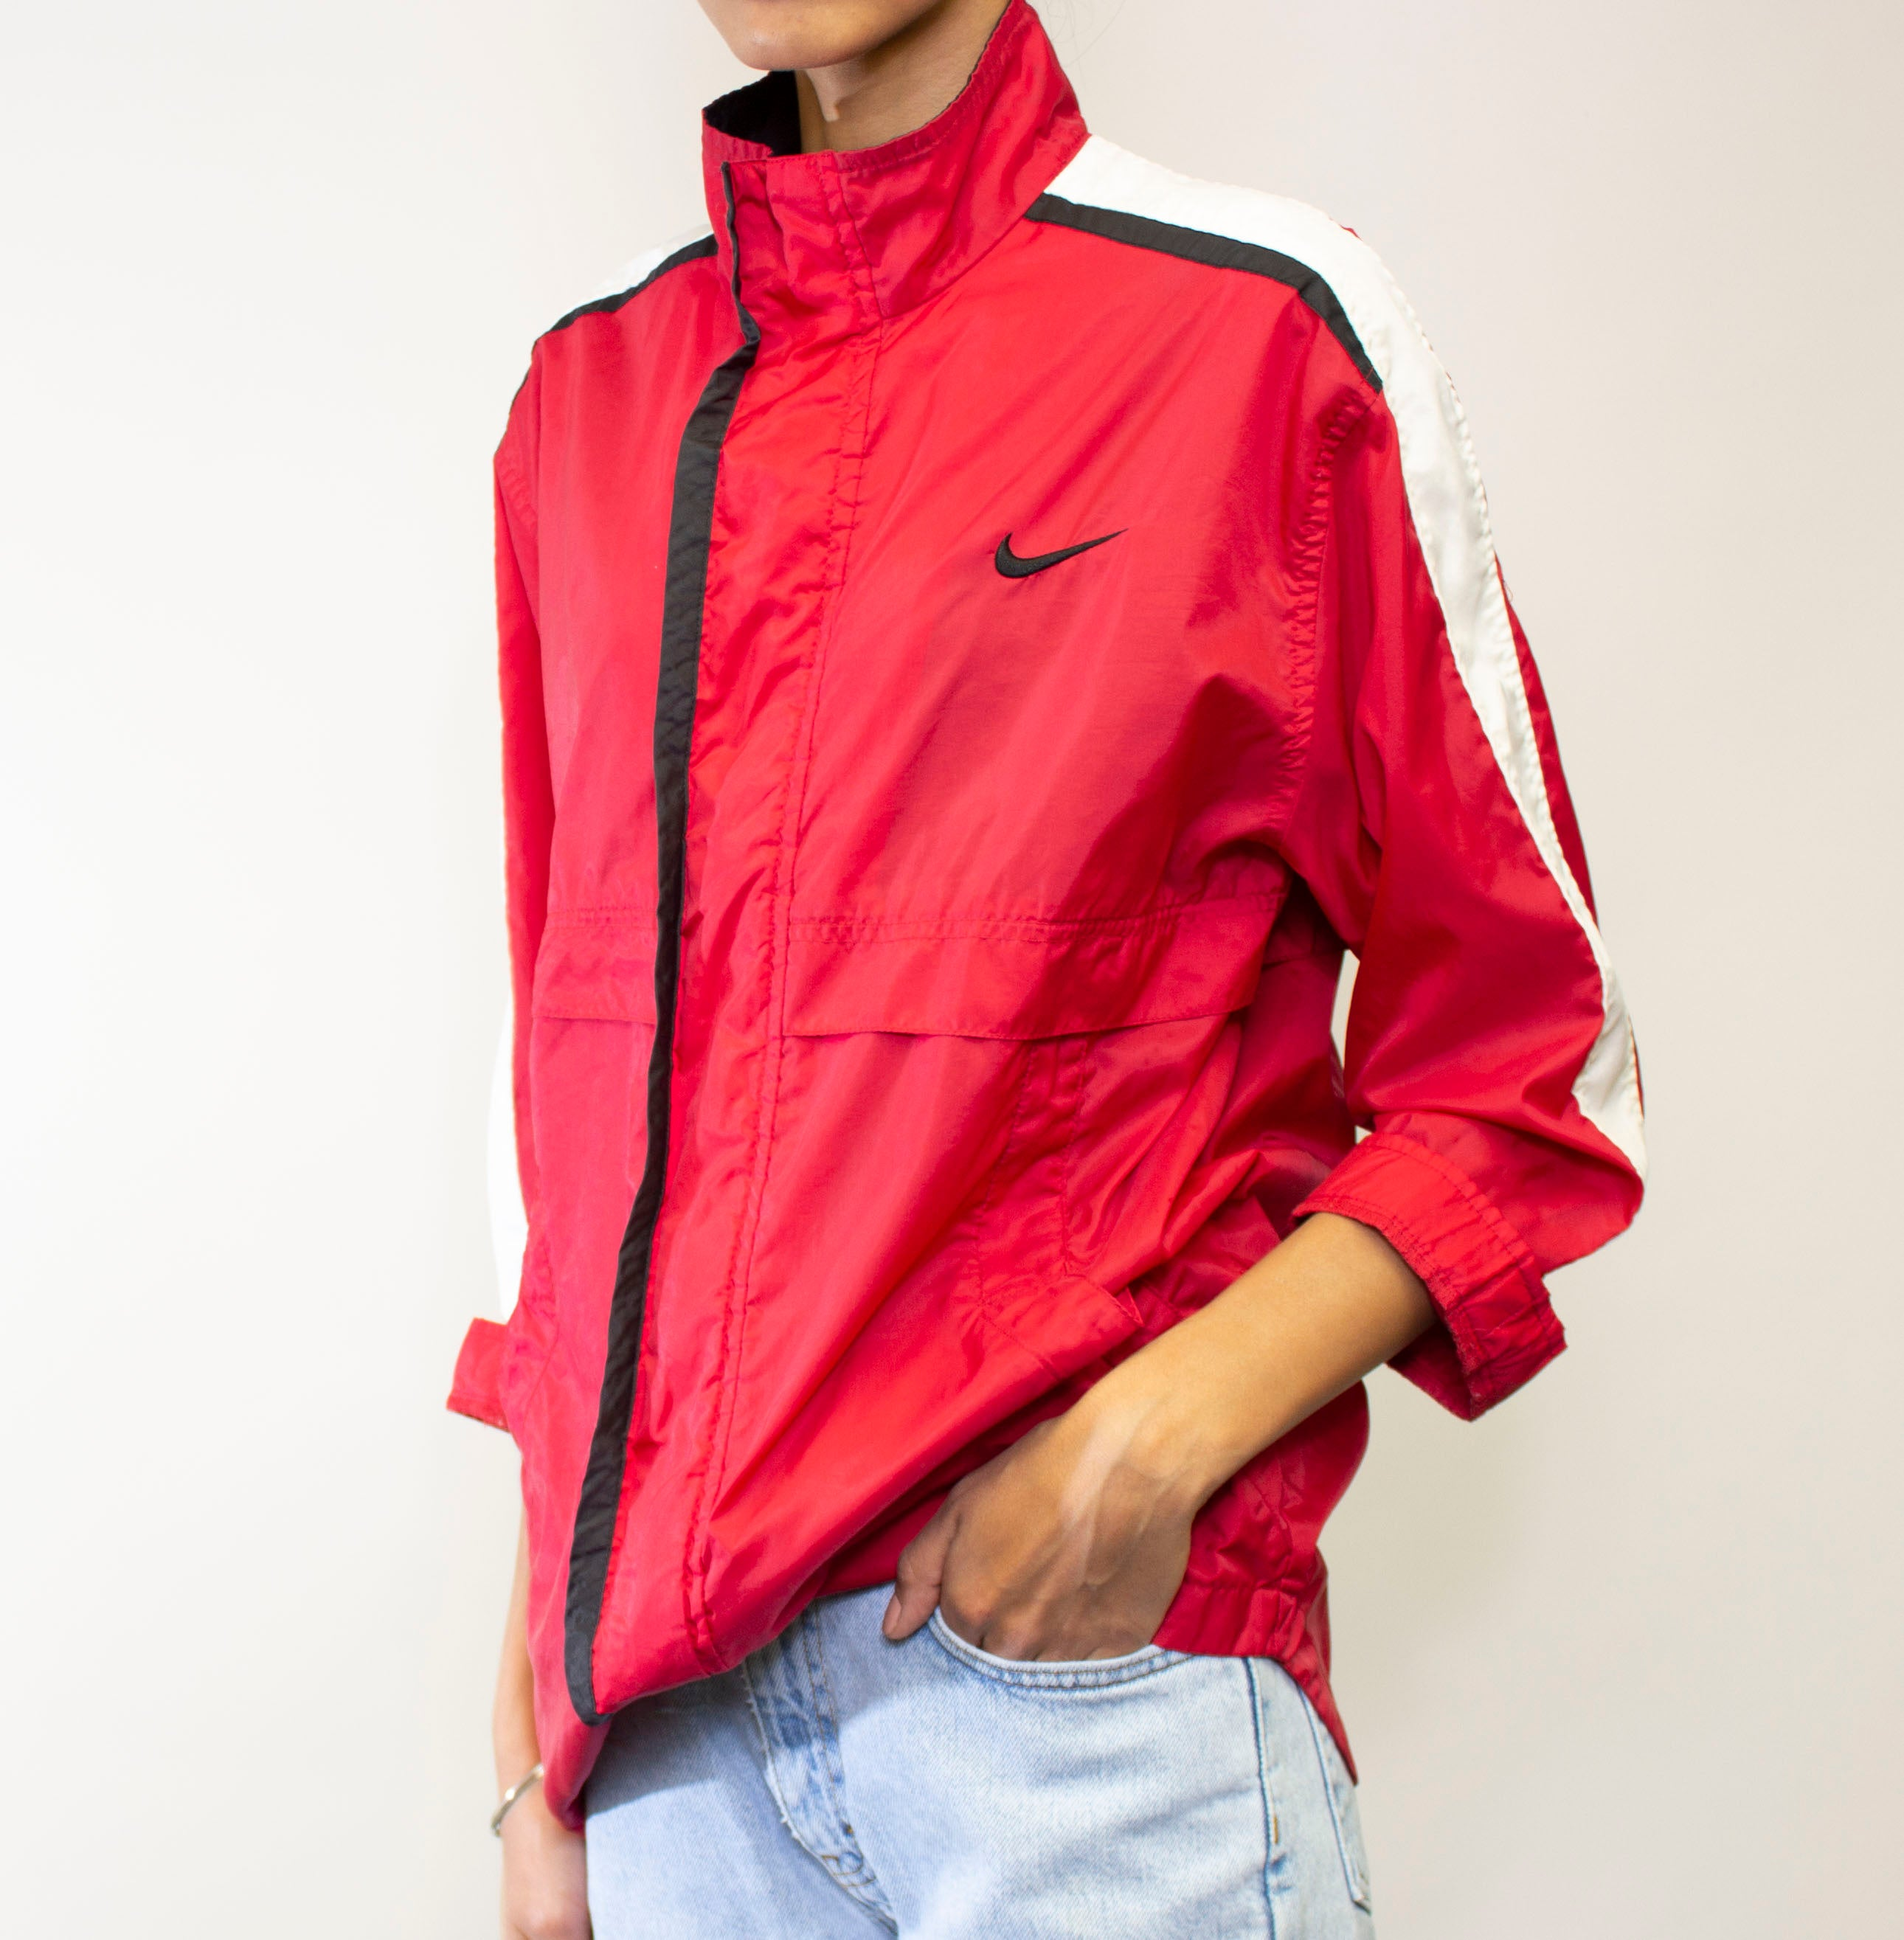 Red Stripe Nike Windbreaker